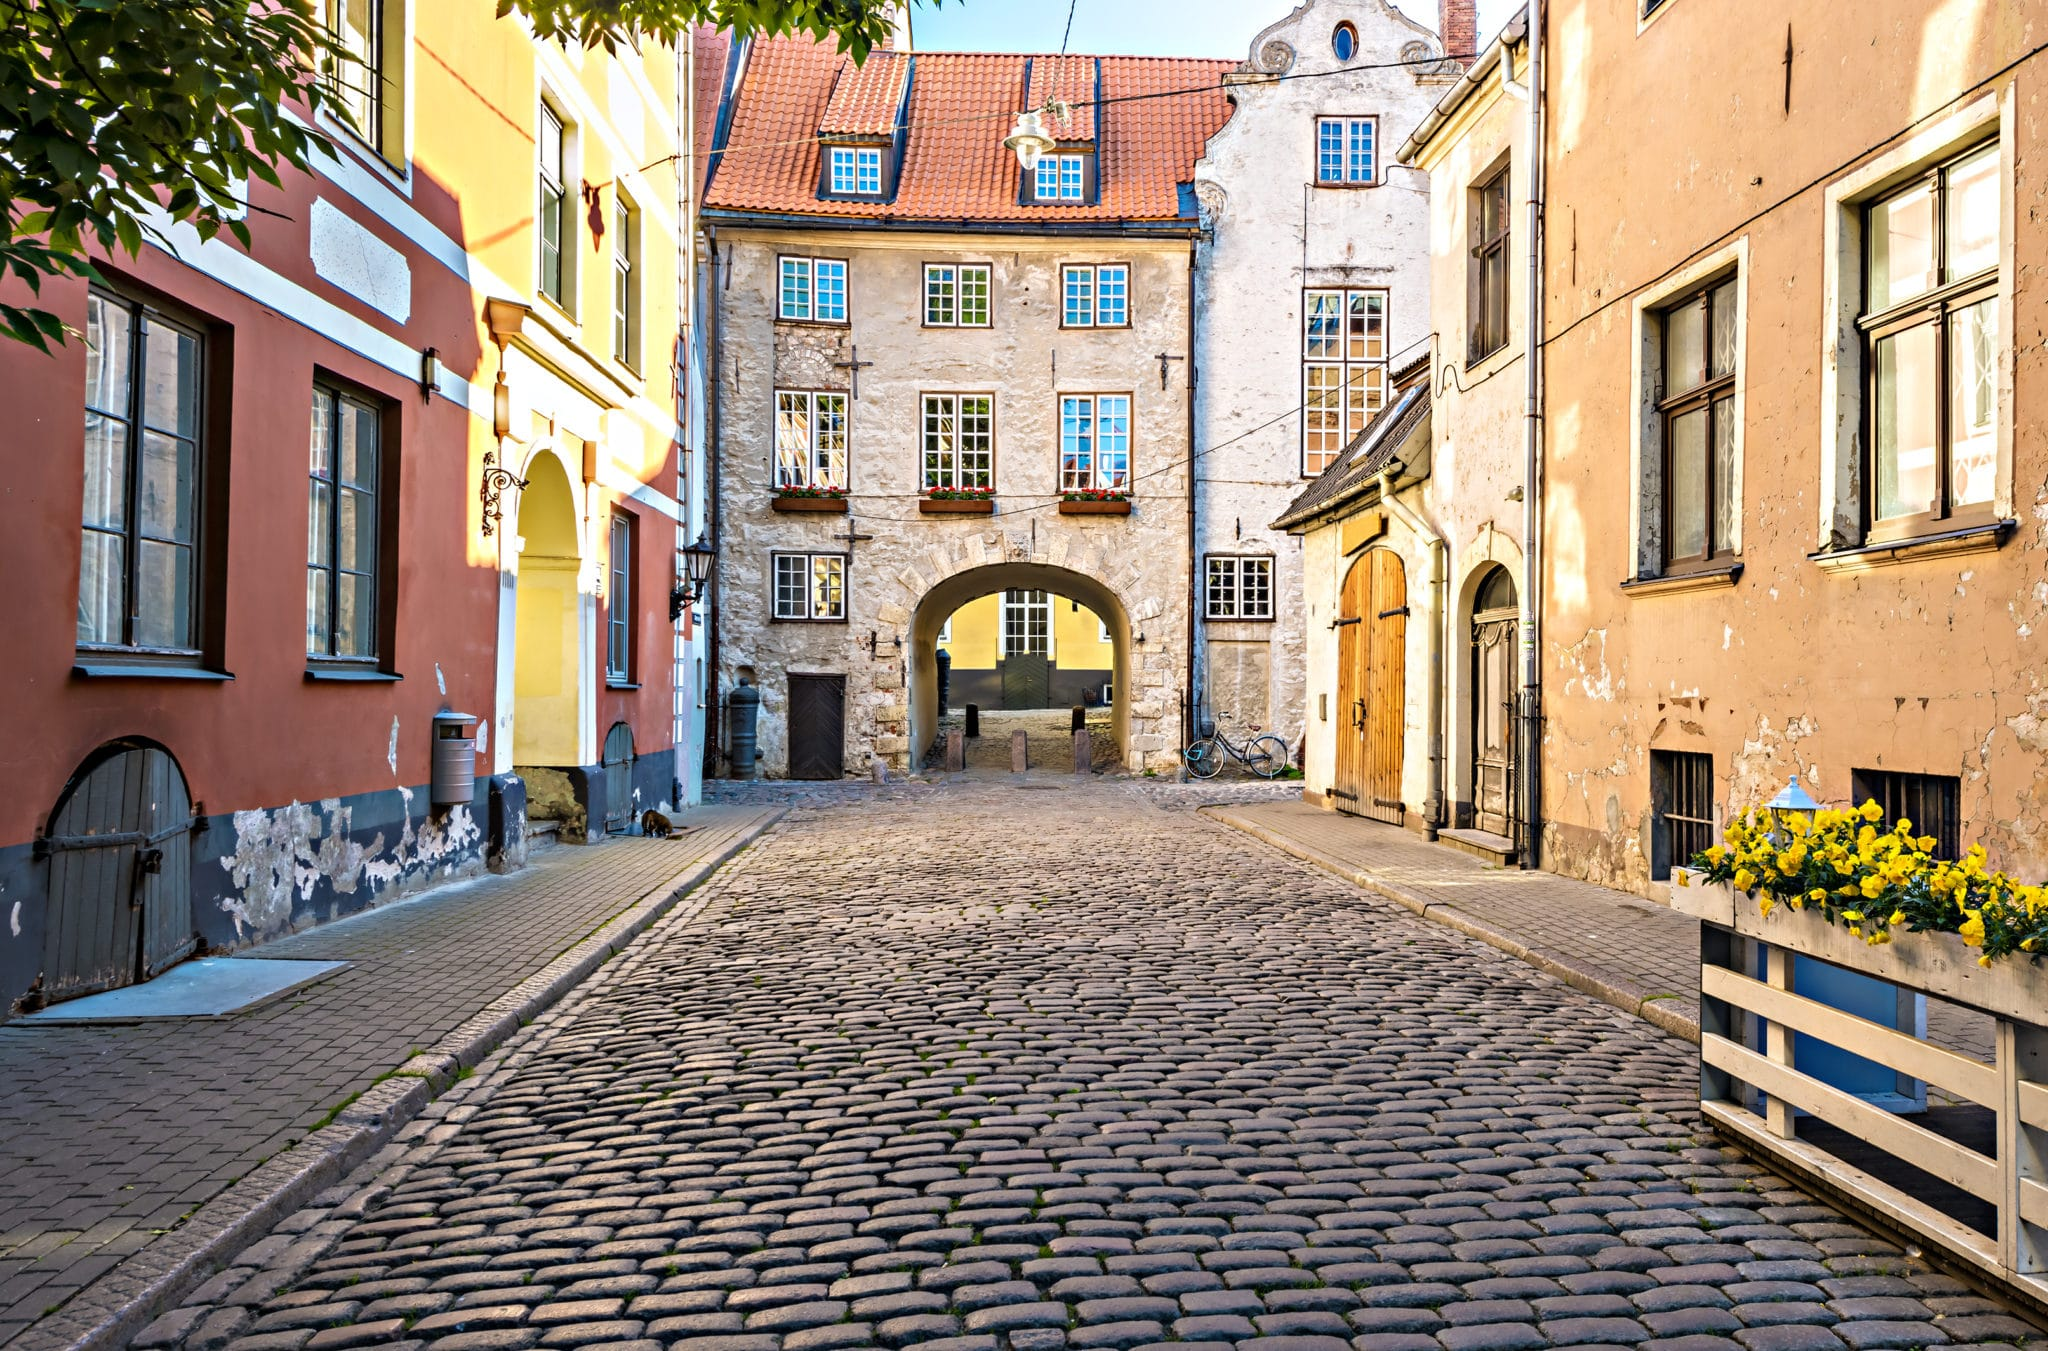 Swedish Gate in Riga, Latvia